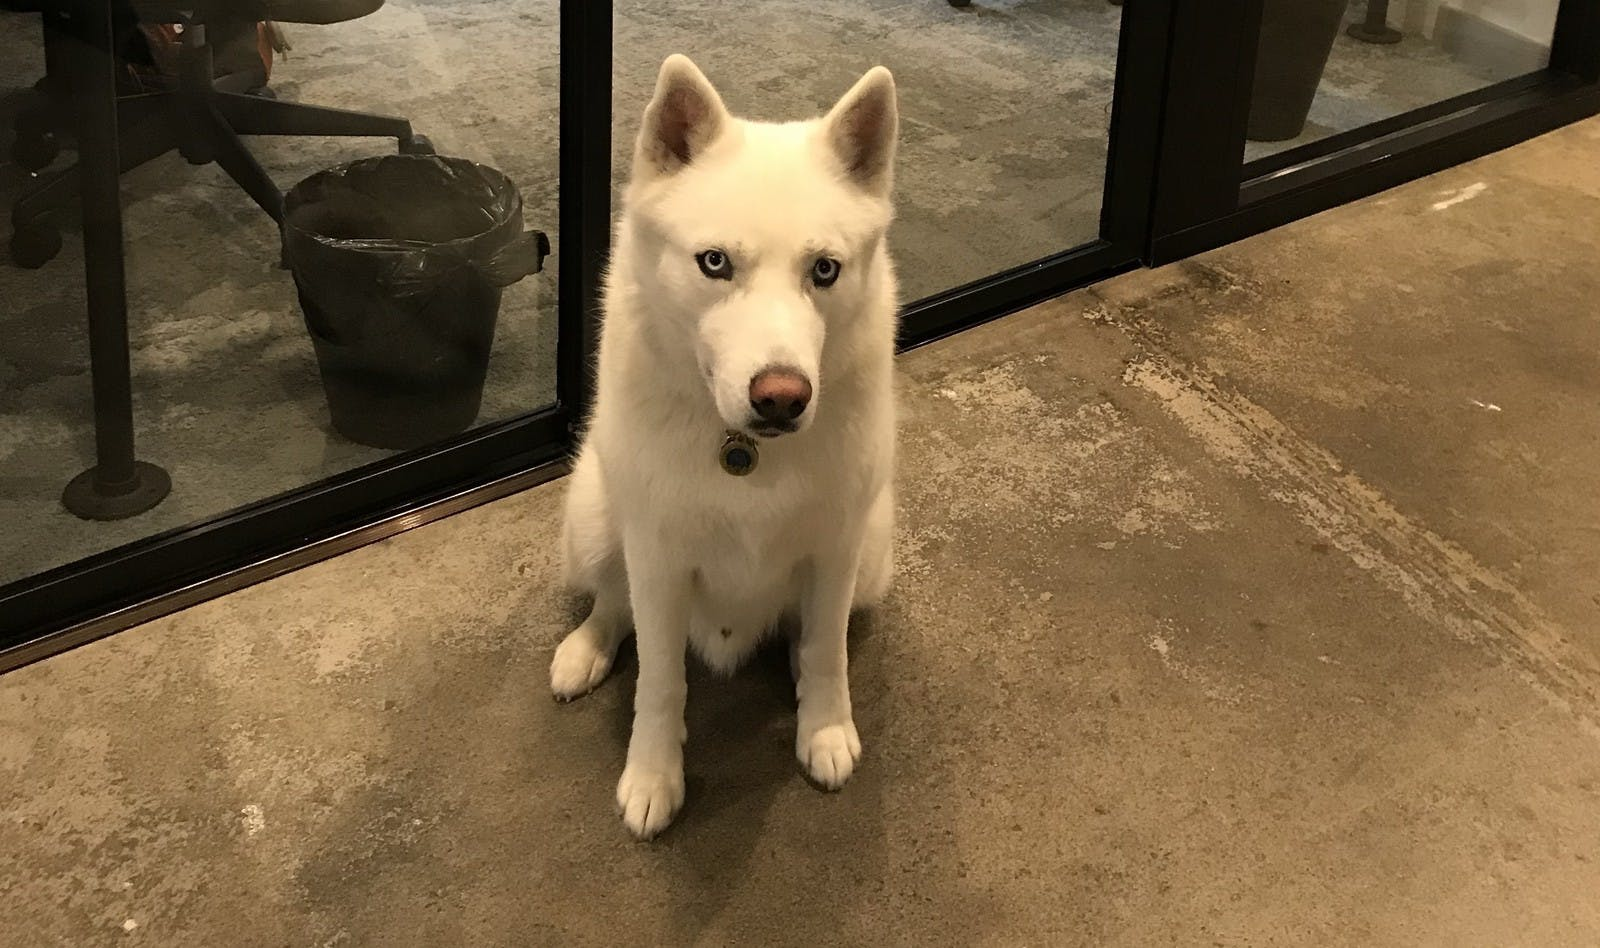 Cute White Dog in a Dog Friendly Office Space